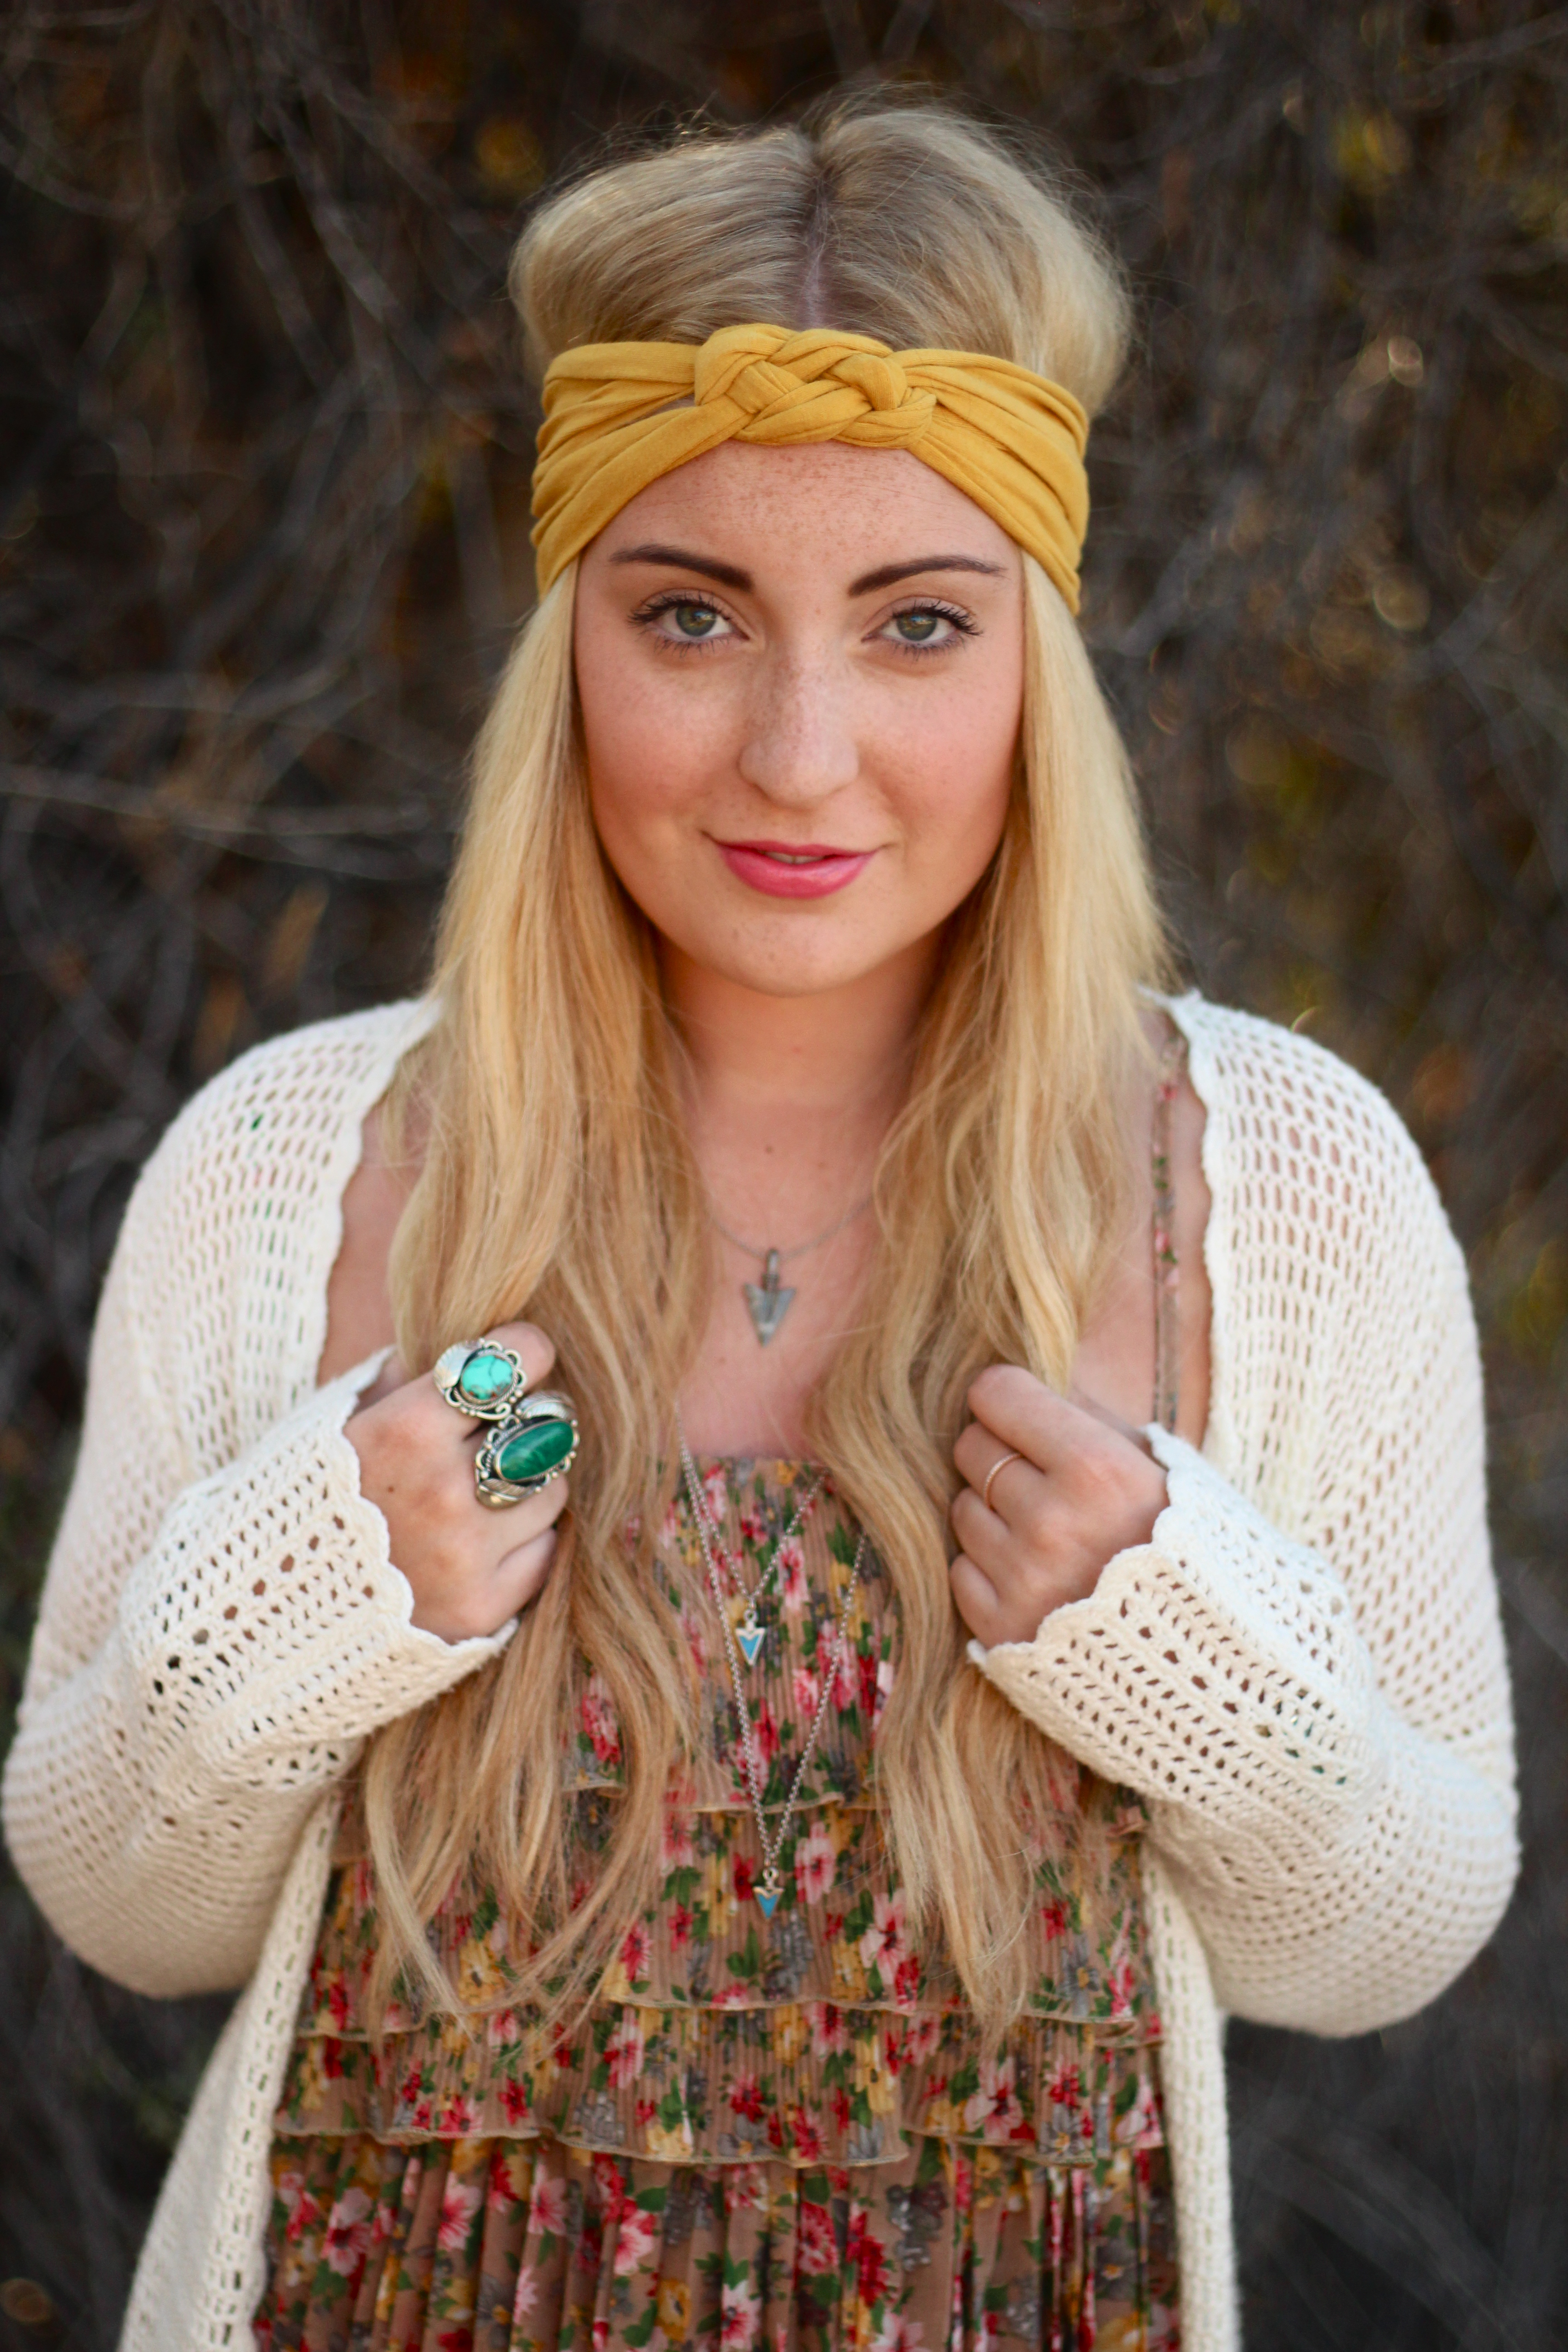 I Love Mixing Up My Hairstyles When I Wear Turban Headbands My Two  Favorite Ways To Wear These Are With A Braid, I Love My Bohemian Braid For  This,